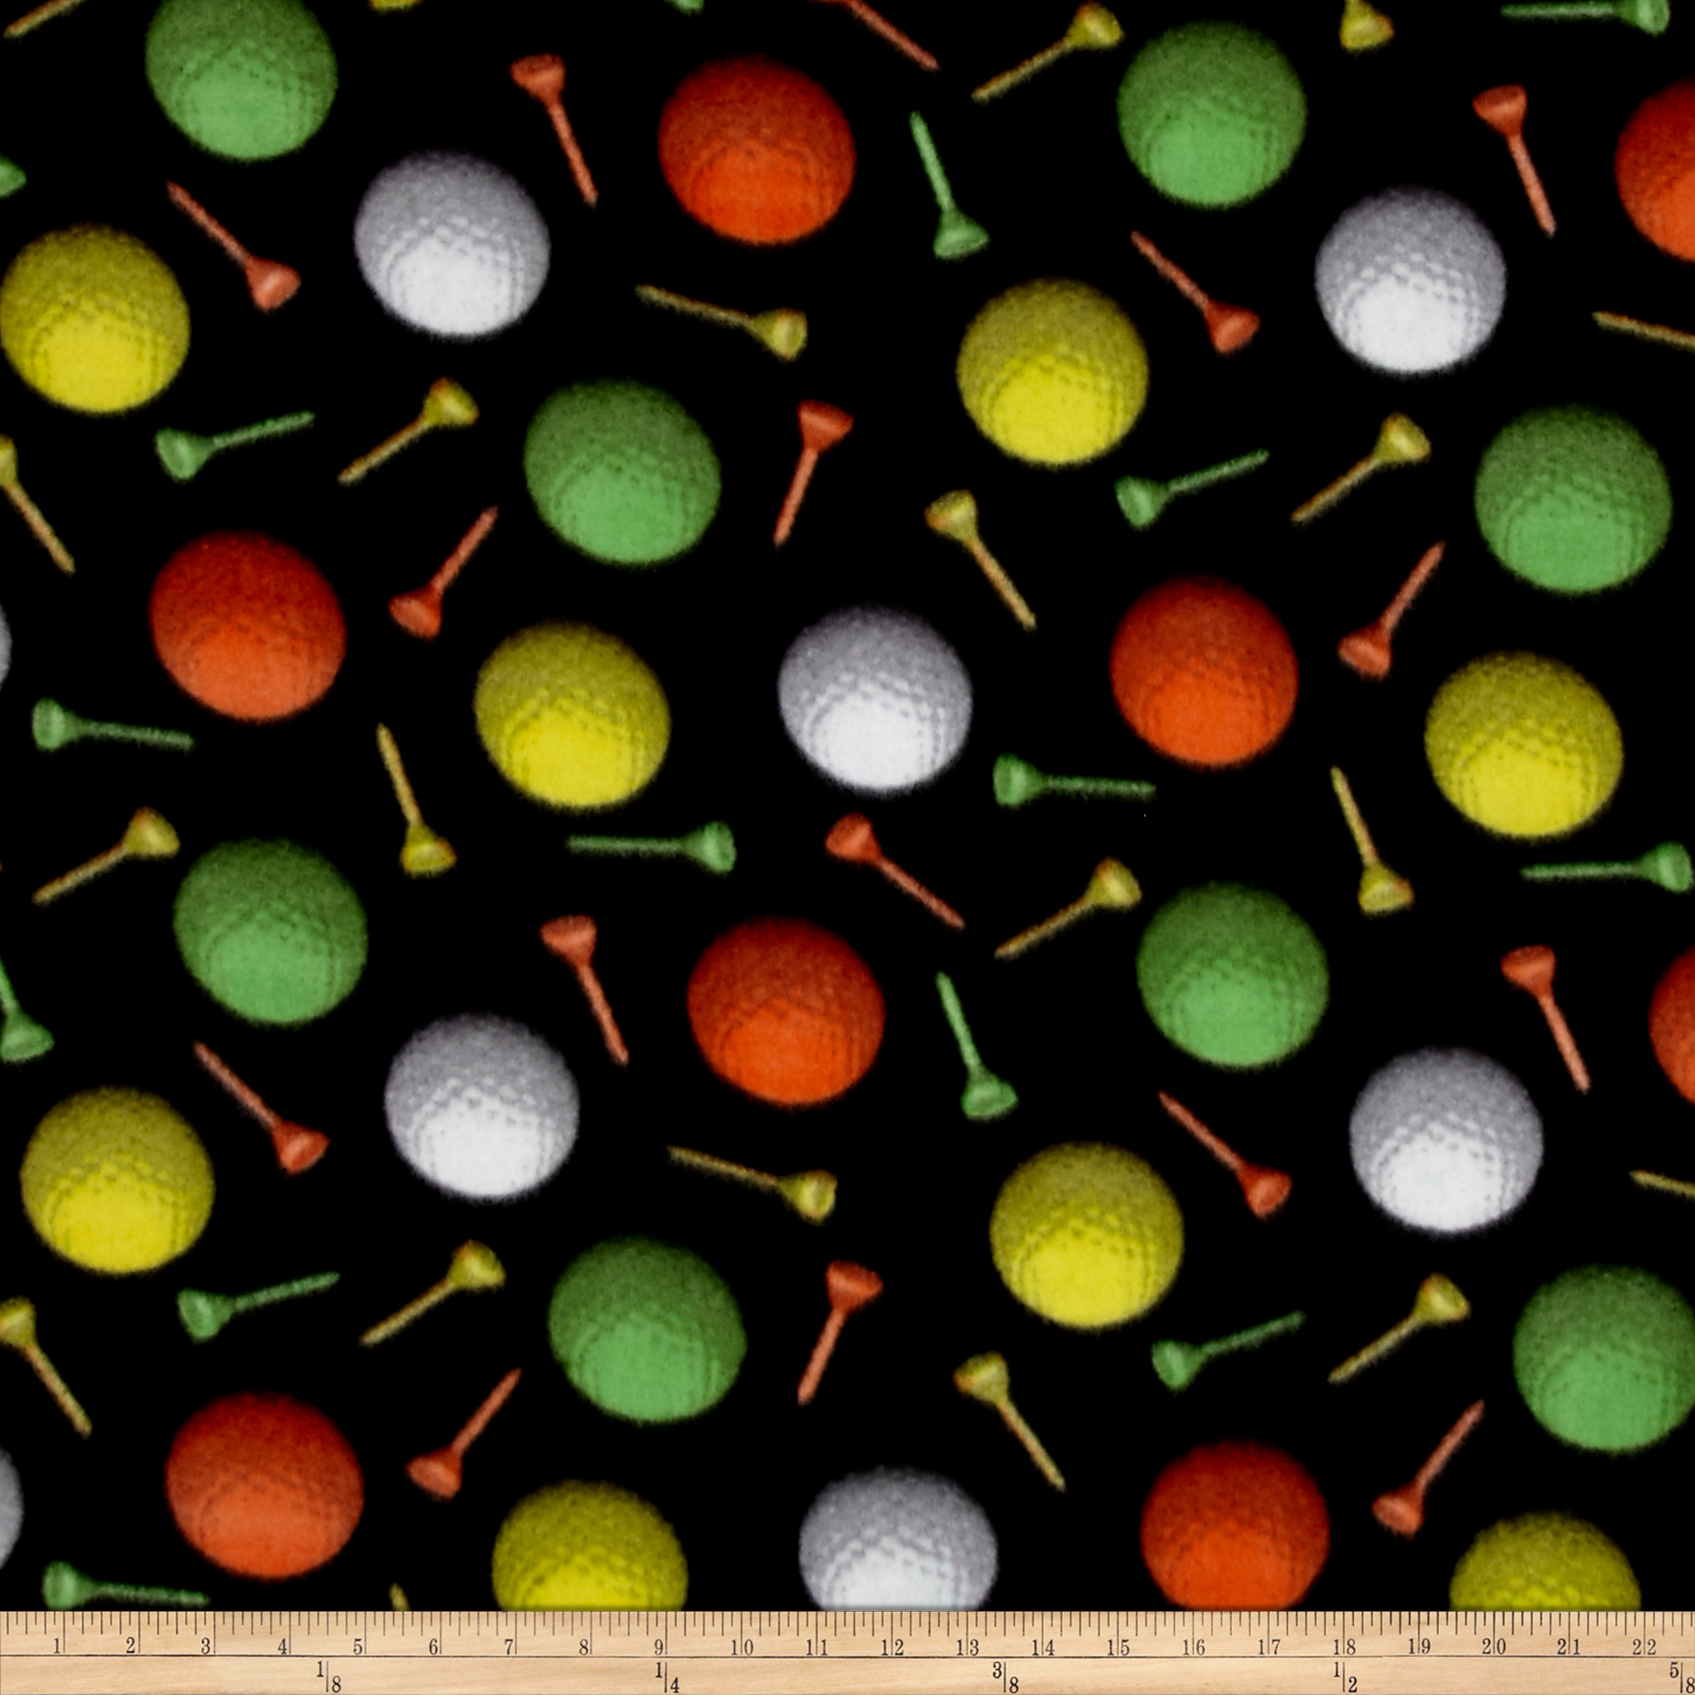 Fleece Prints All Star Sports Golf Ball Party Black Fabric By The Yard 0449027